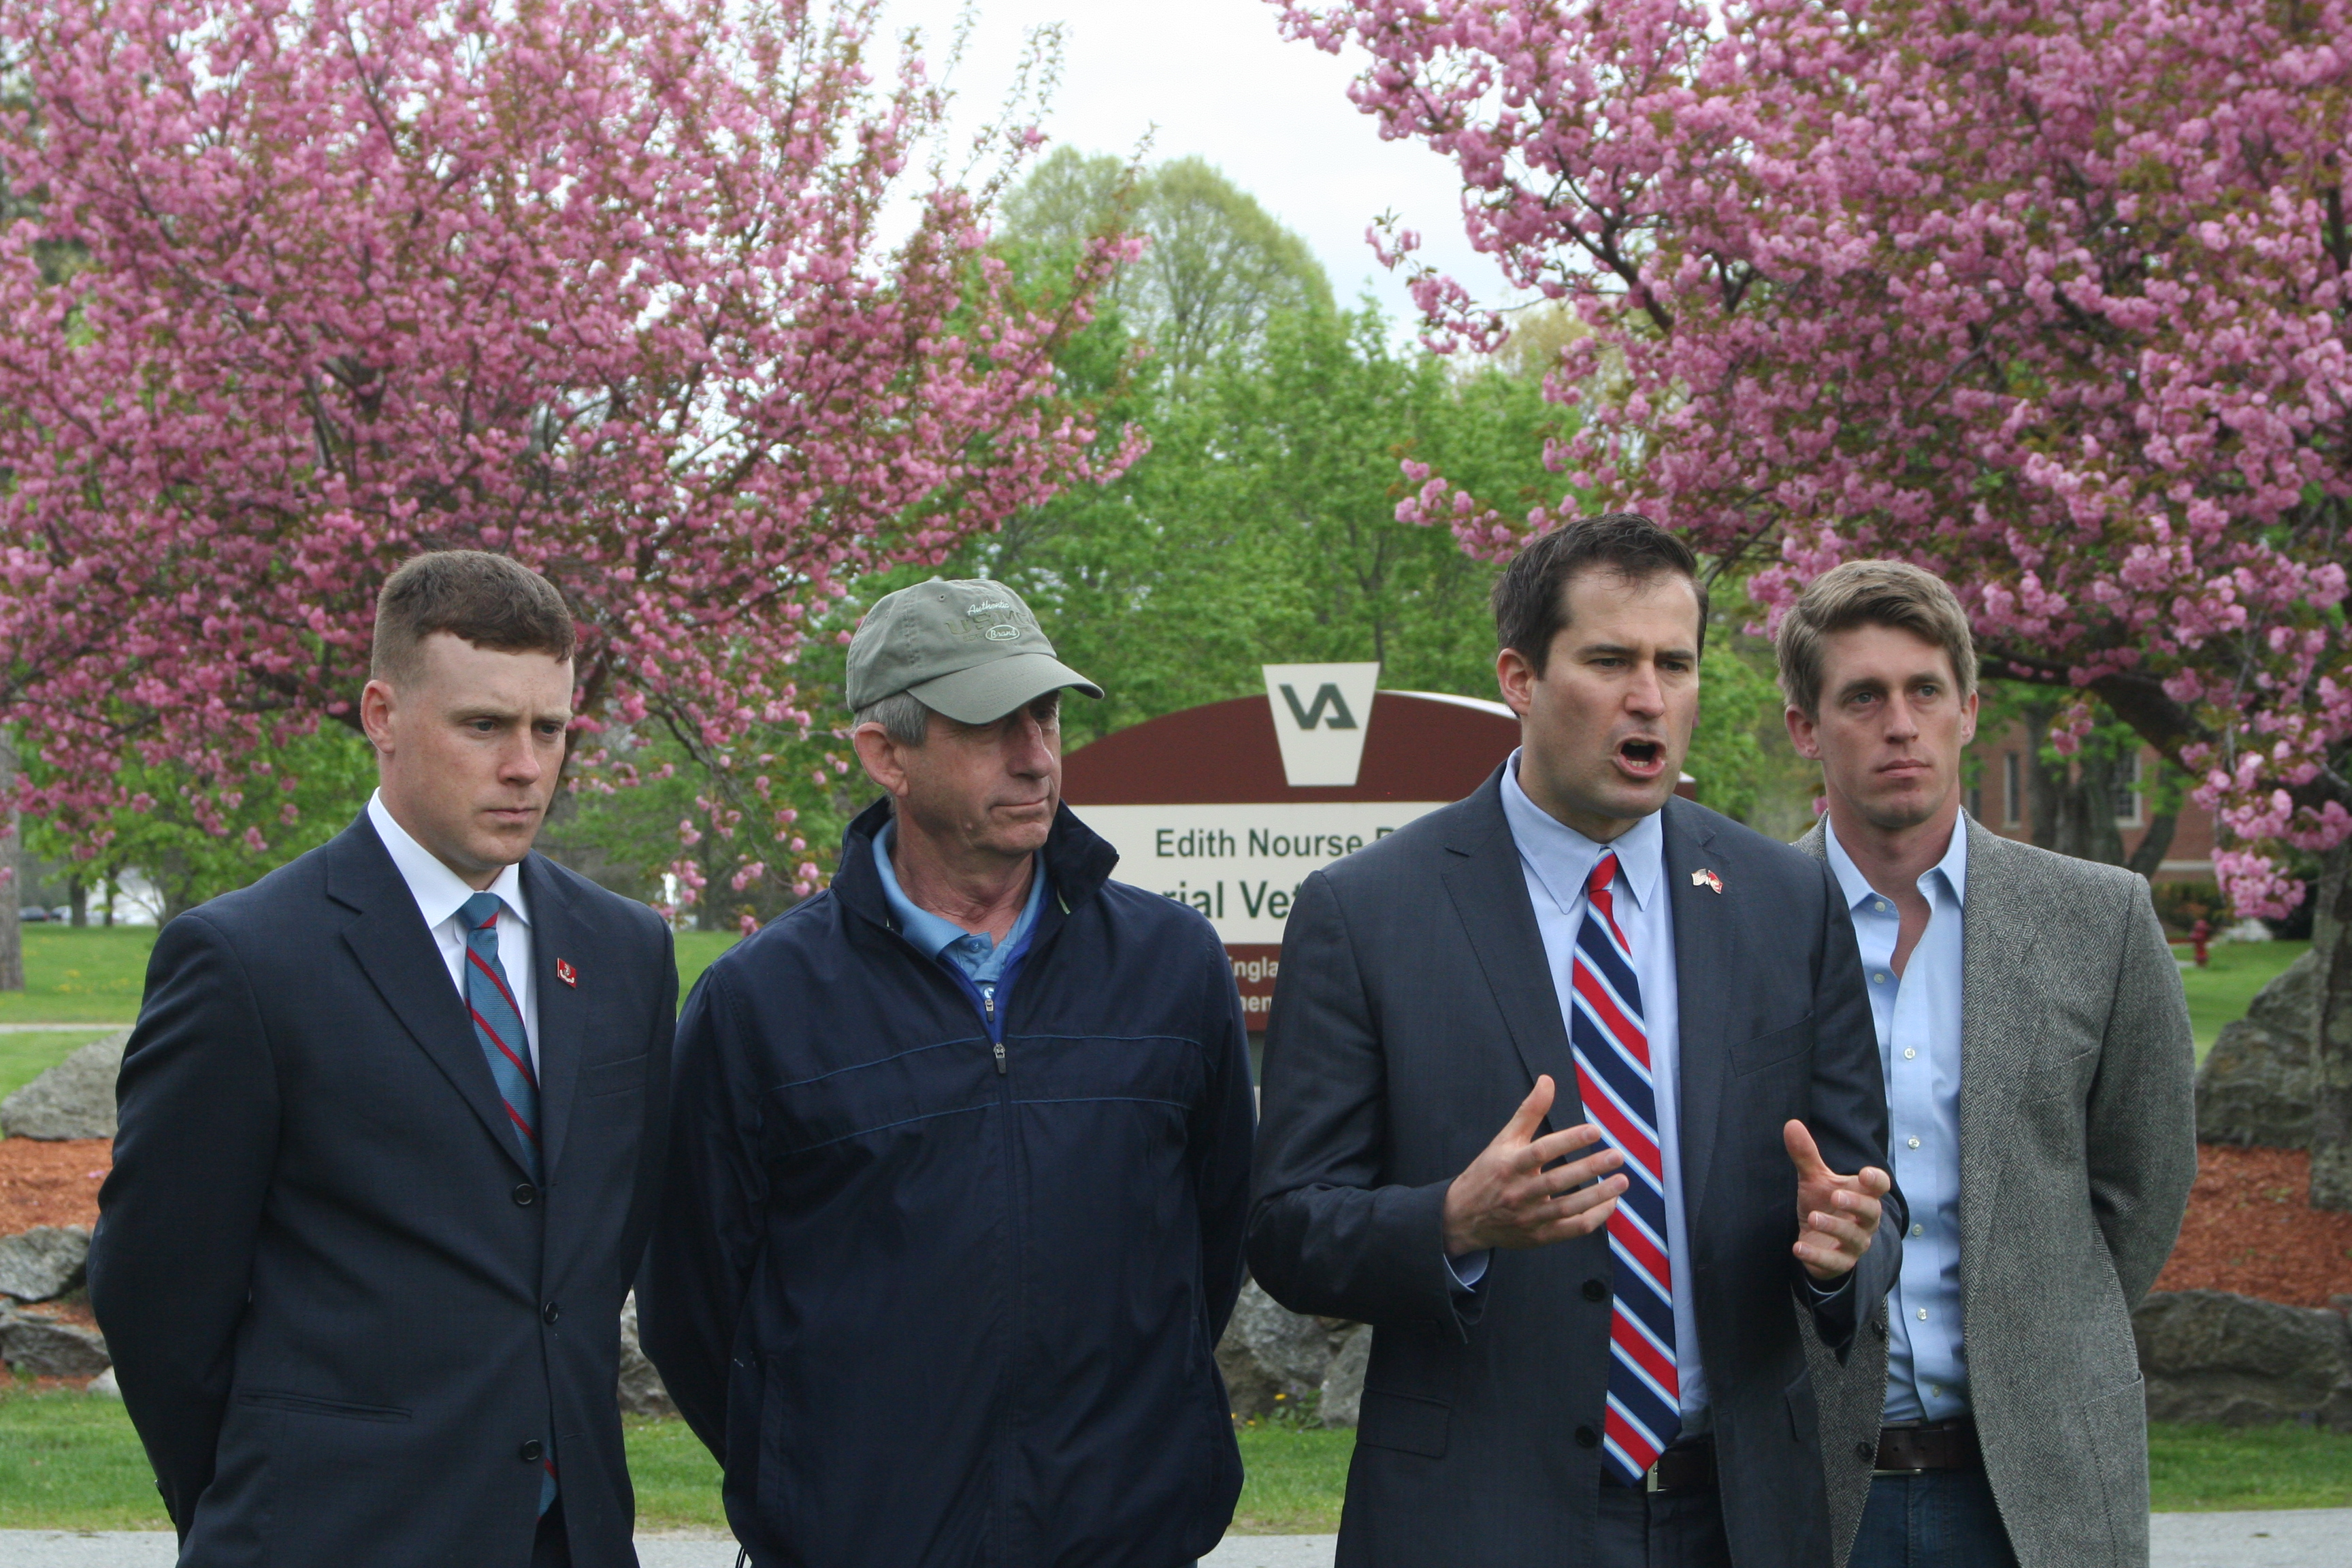 140513_VA_Press_Conference_in_Bedford.JPG